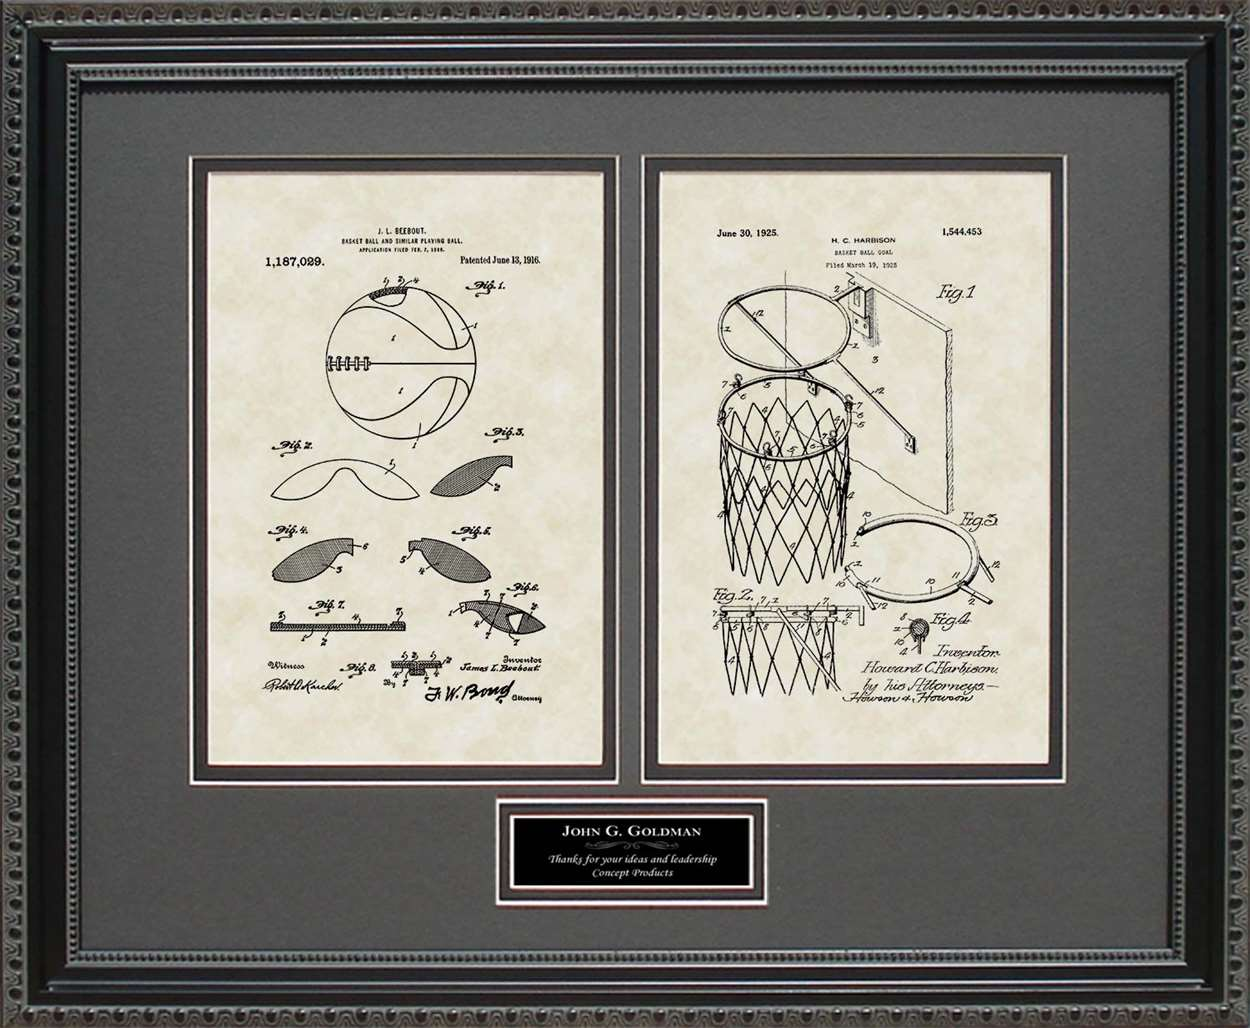 Personalized Basketball & Goal Patents, 16x20